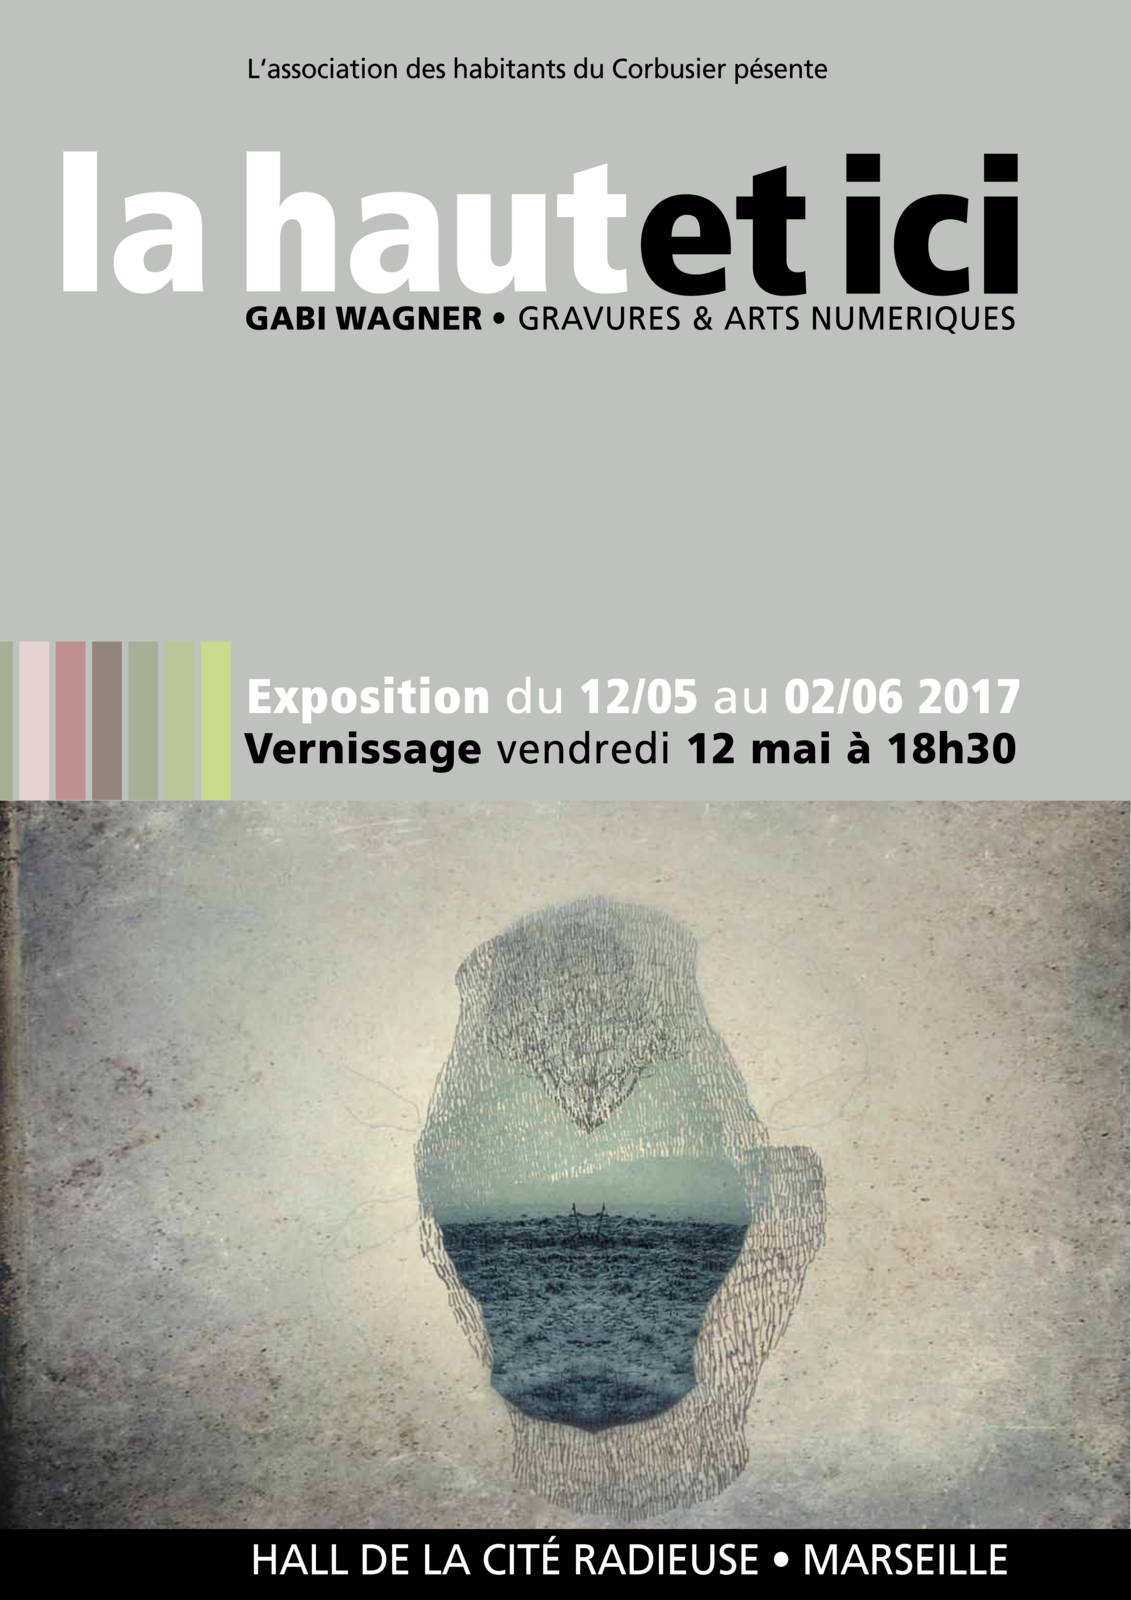 VERNISSAGE VEND 12 MAI